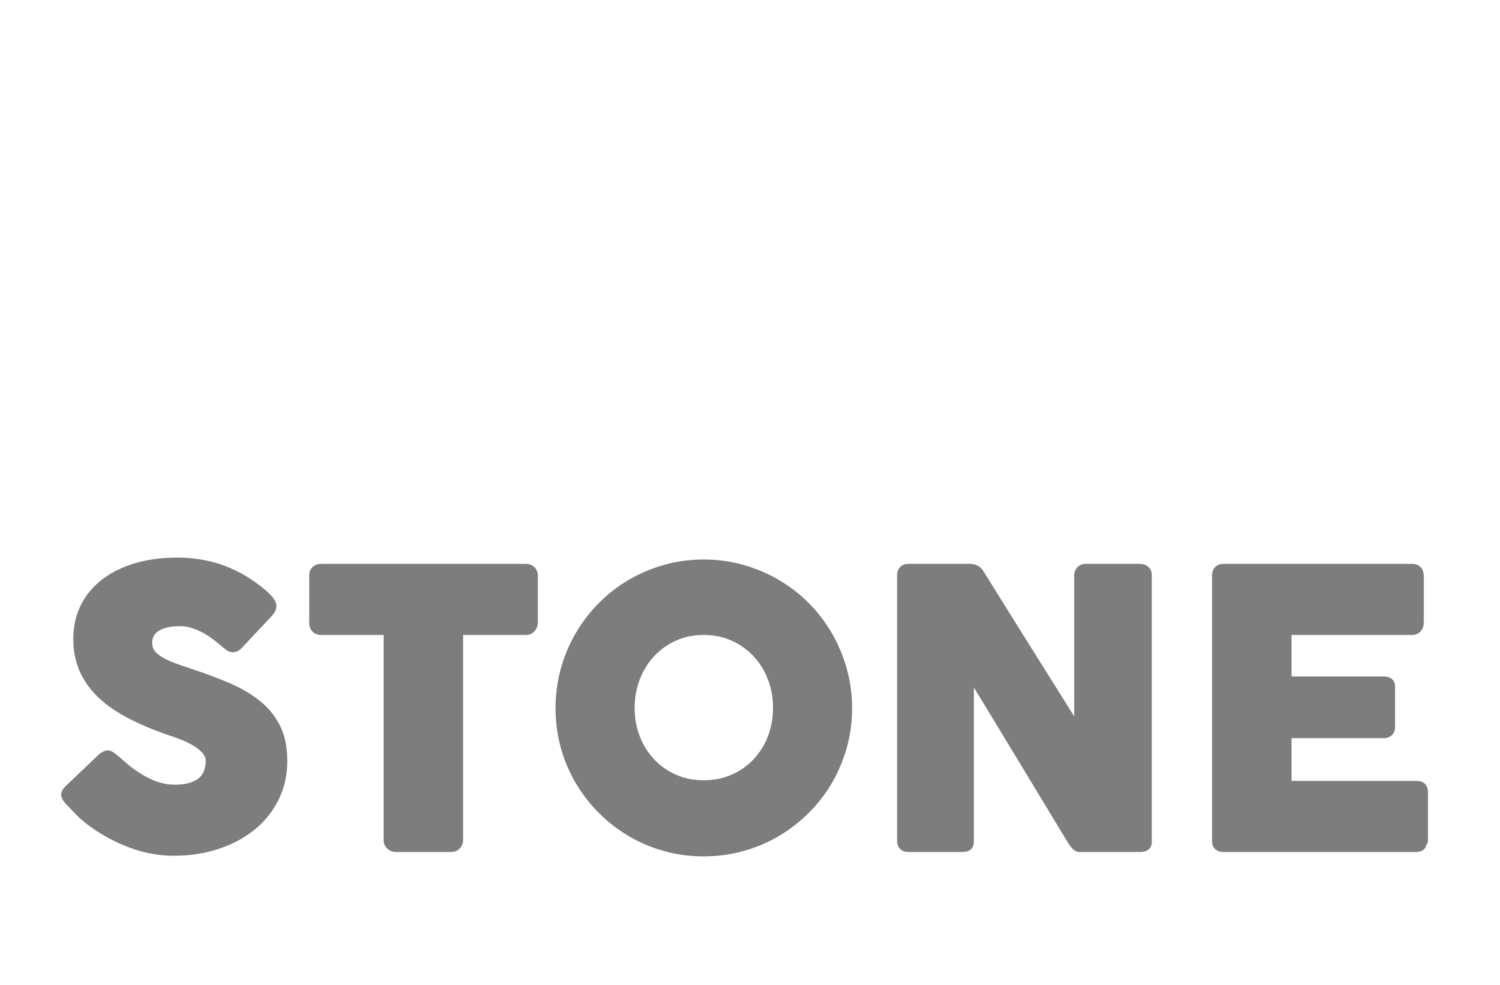 TIMBER & STONE | architecture + design llc